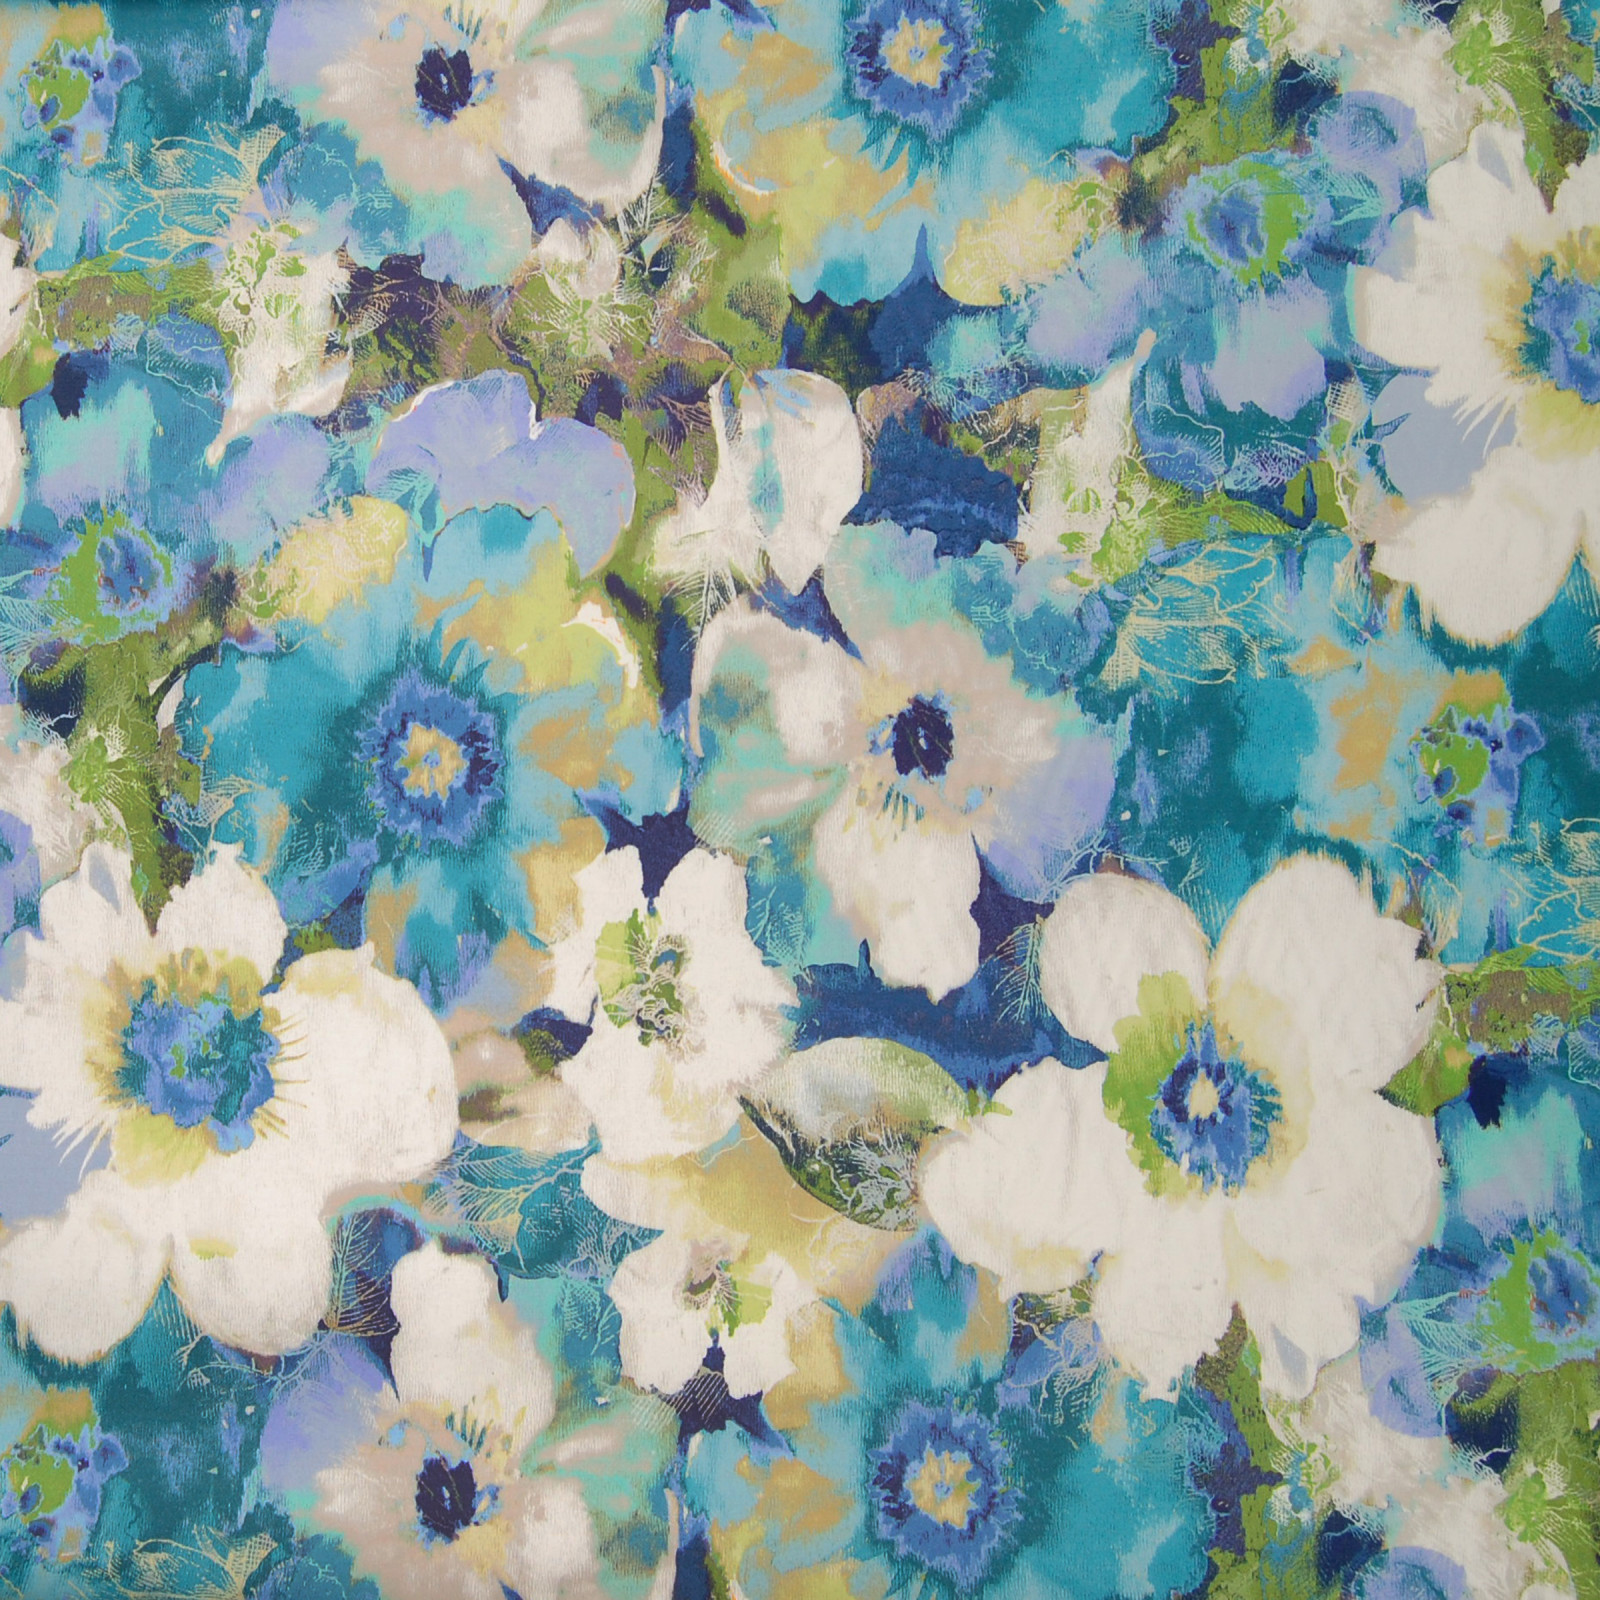 Bermuda Blue And Teal Floral Cotton Upholstery Fabric